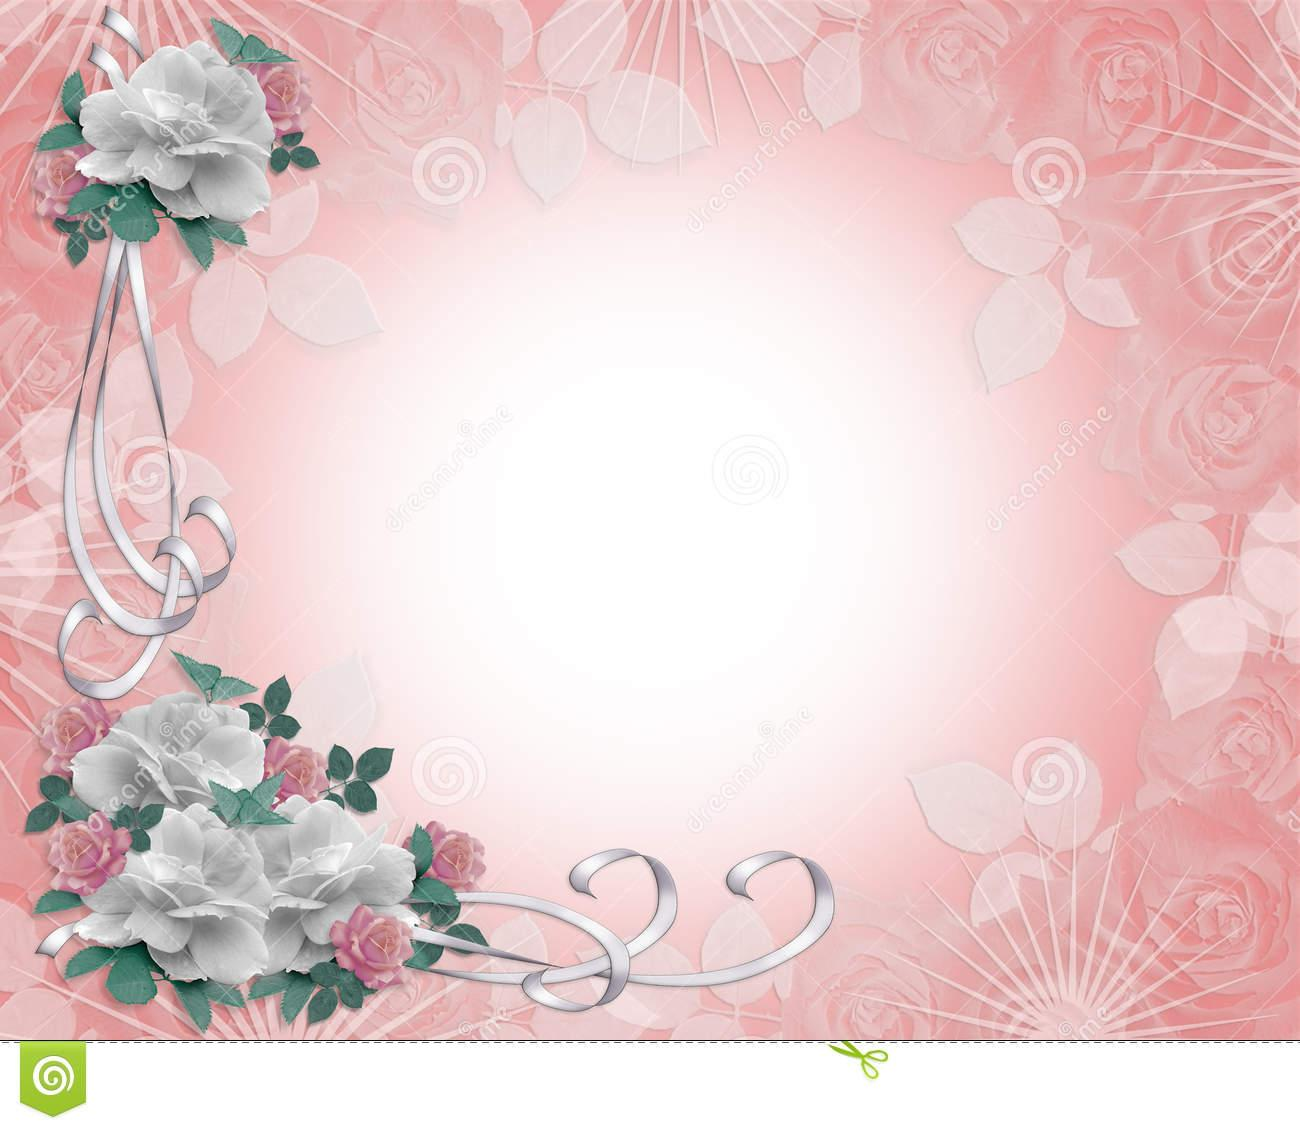 14 Wedding Invitation Background Designs Images Free